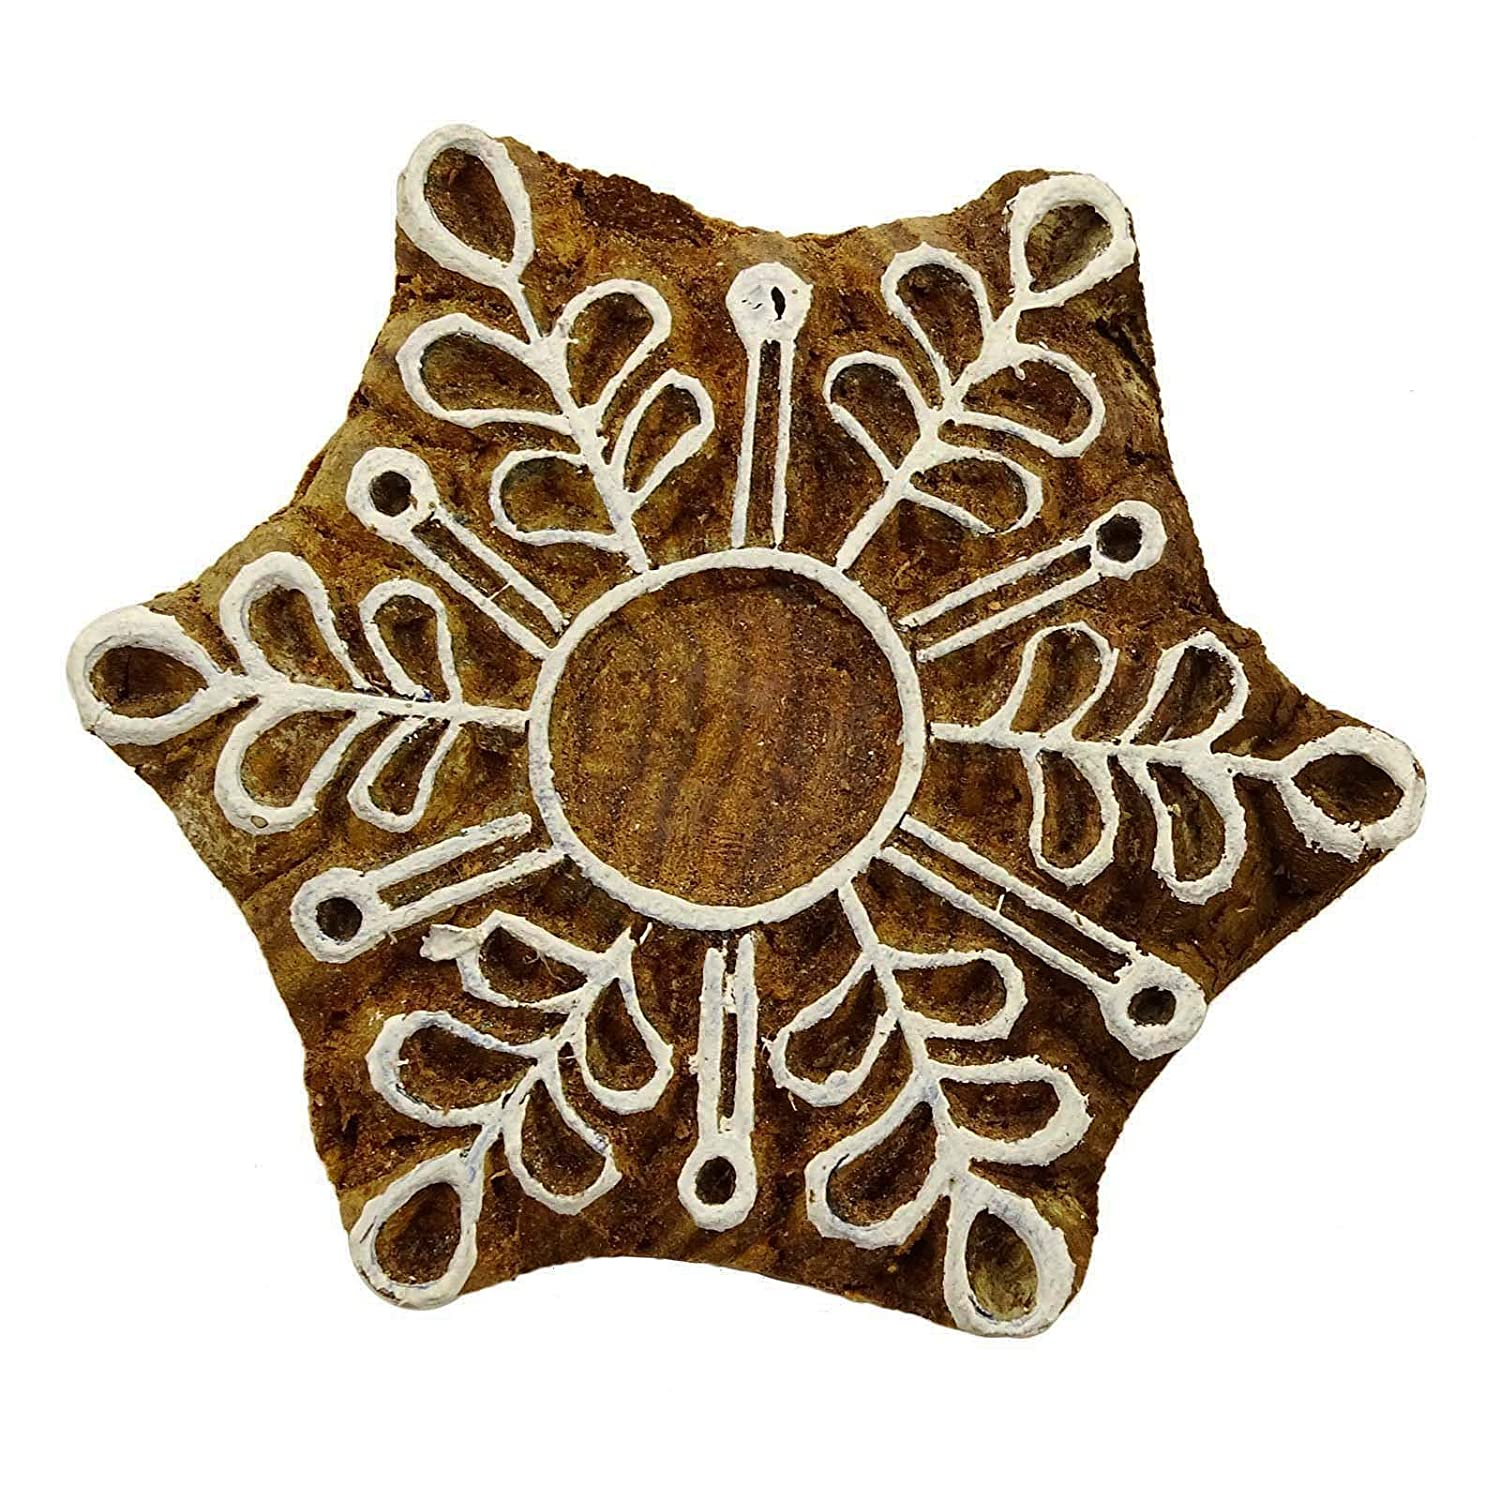 Knitwit Star Stamp Brown Wooden Textile Indian Hand Carved Stamp Printing Block Art